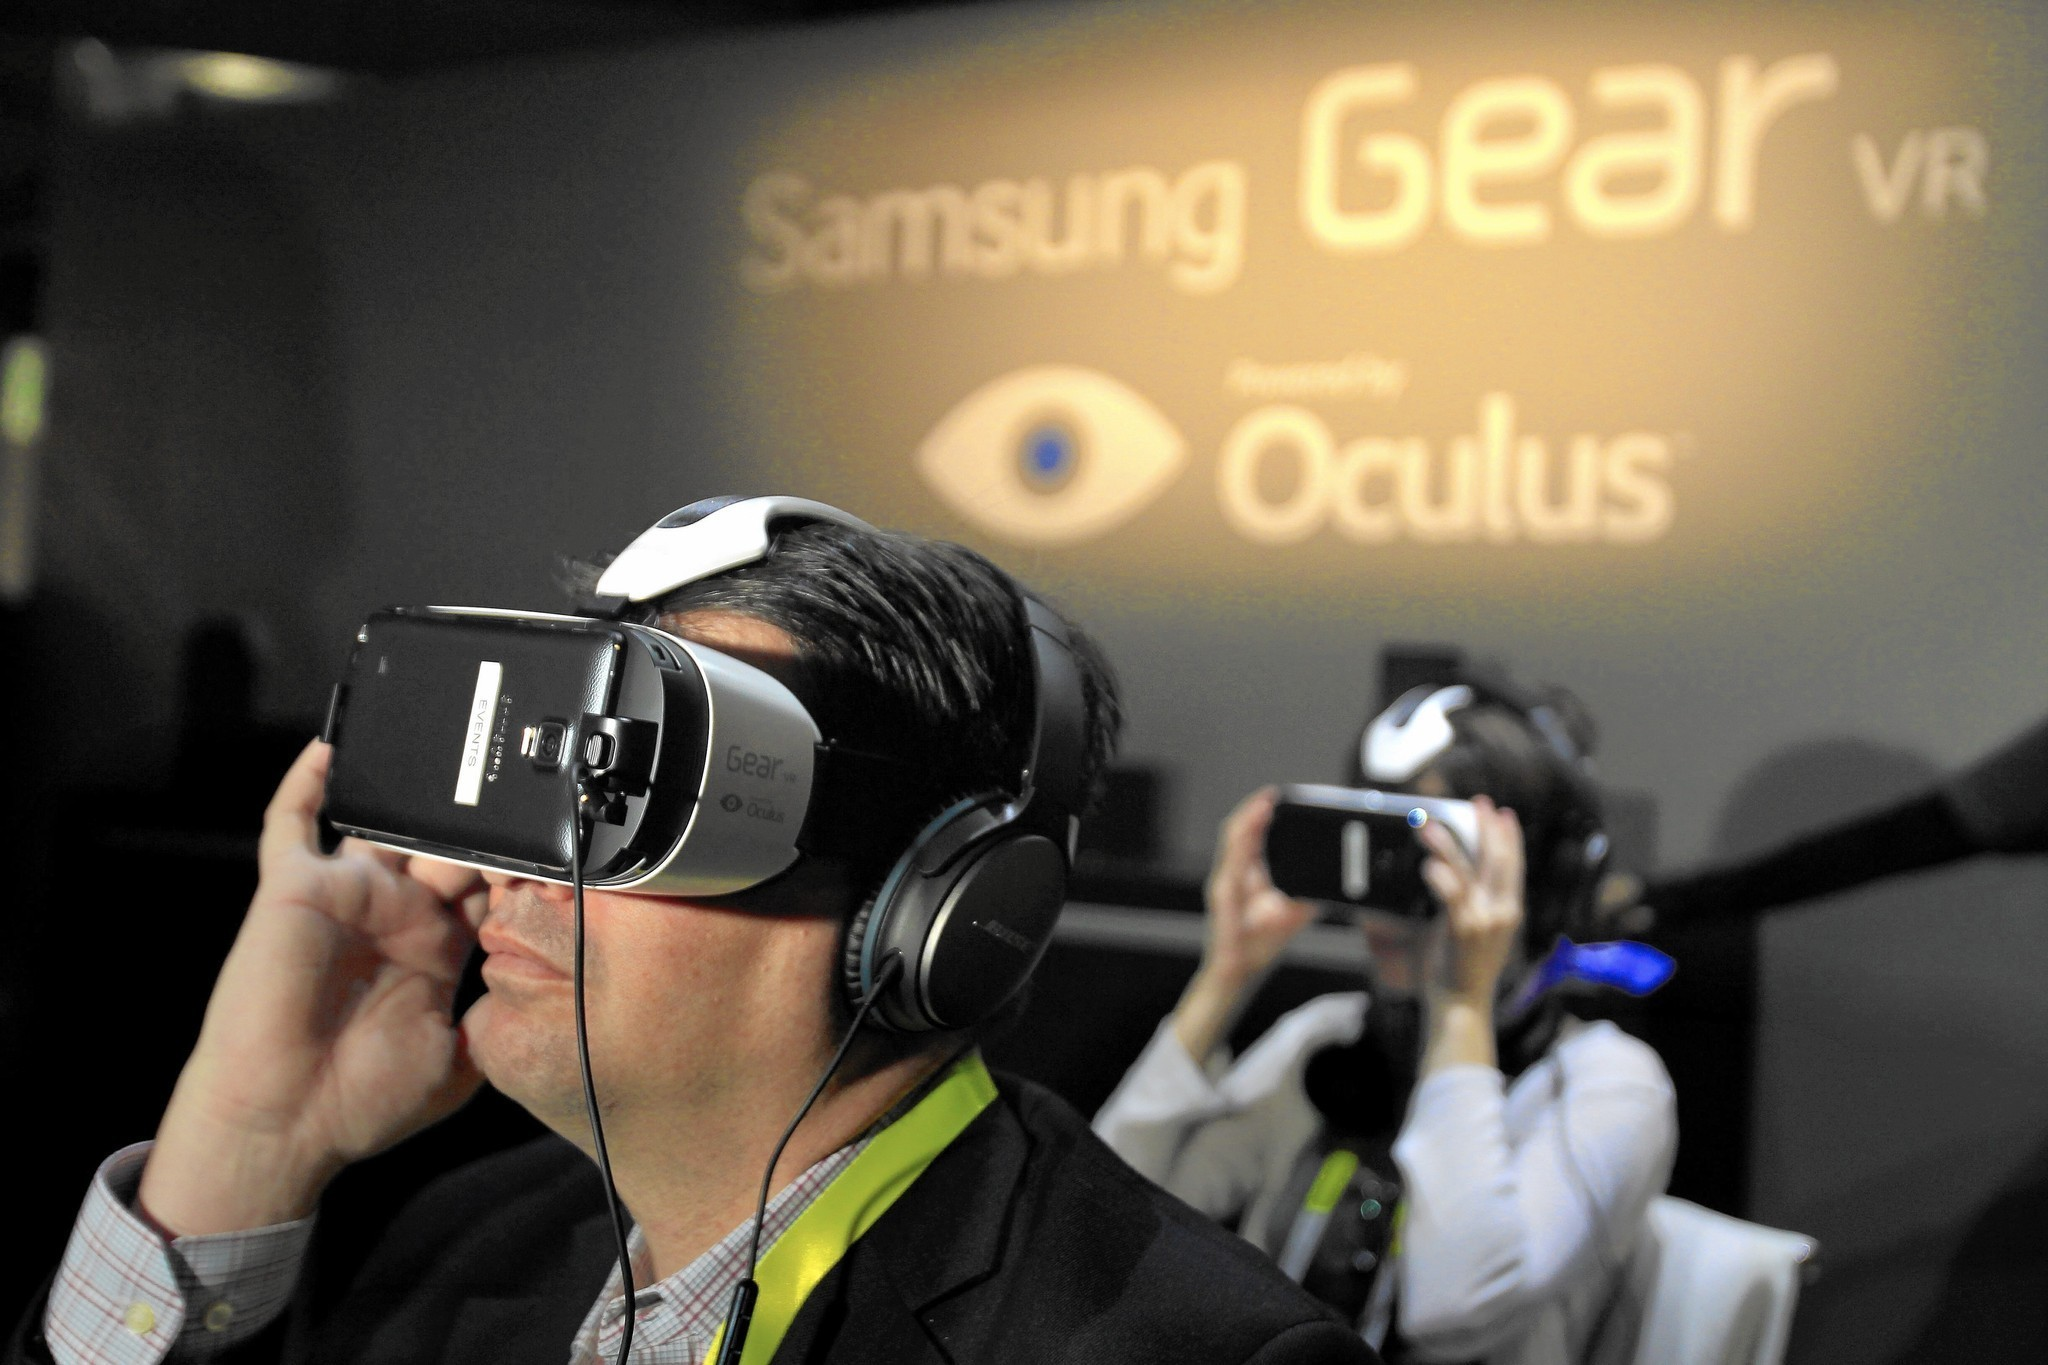 Virtual reality isn't just for video games